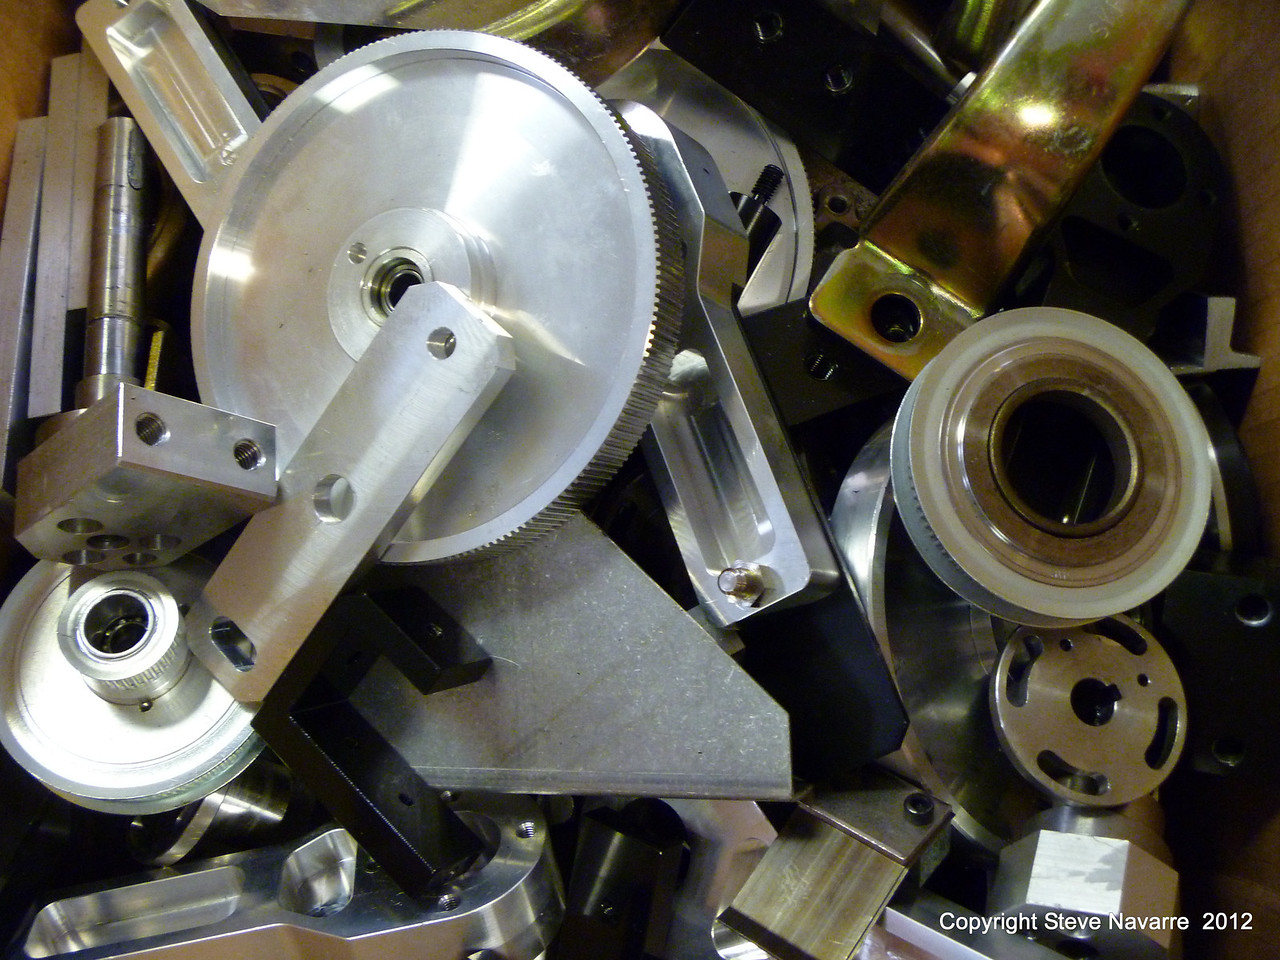 Bunches of custom made aluminum gears and parts.